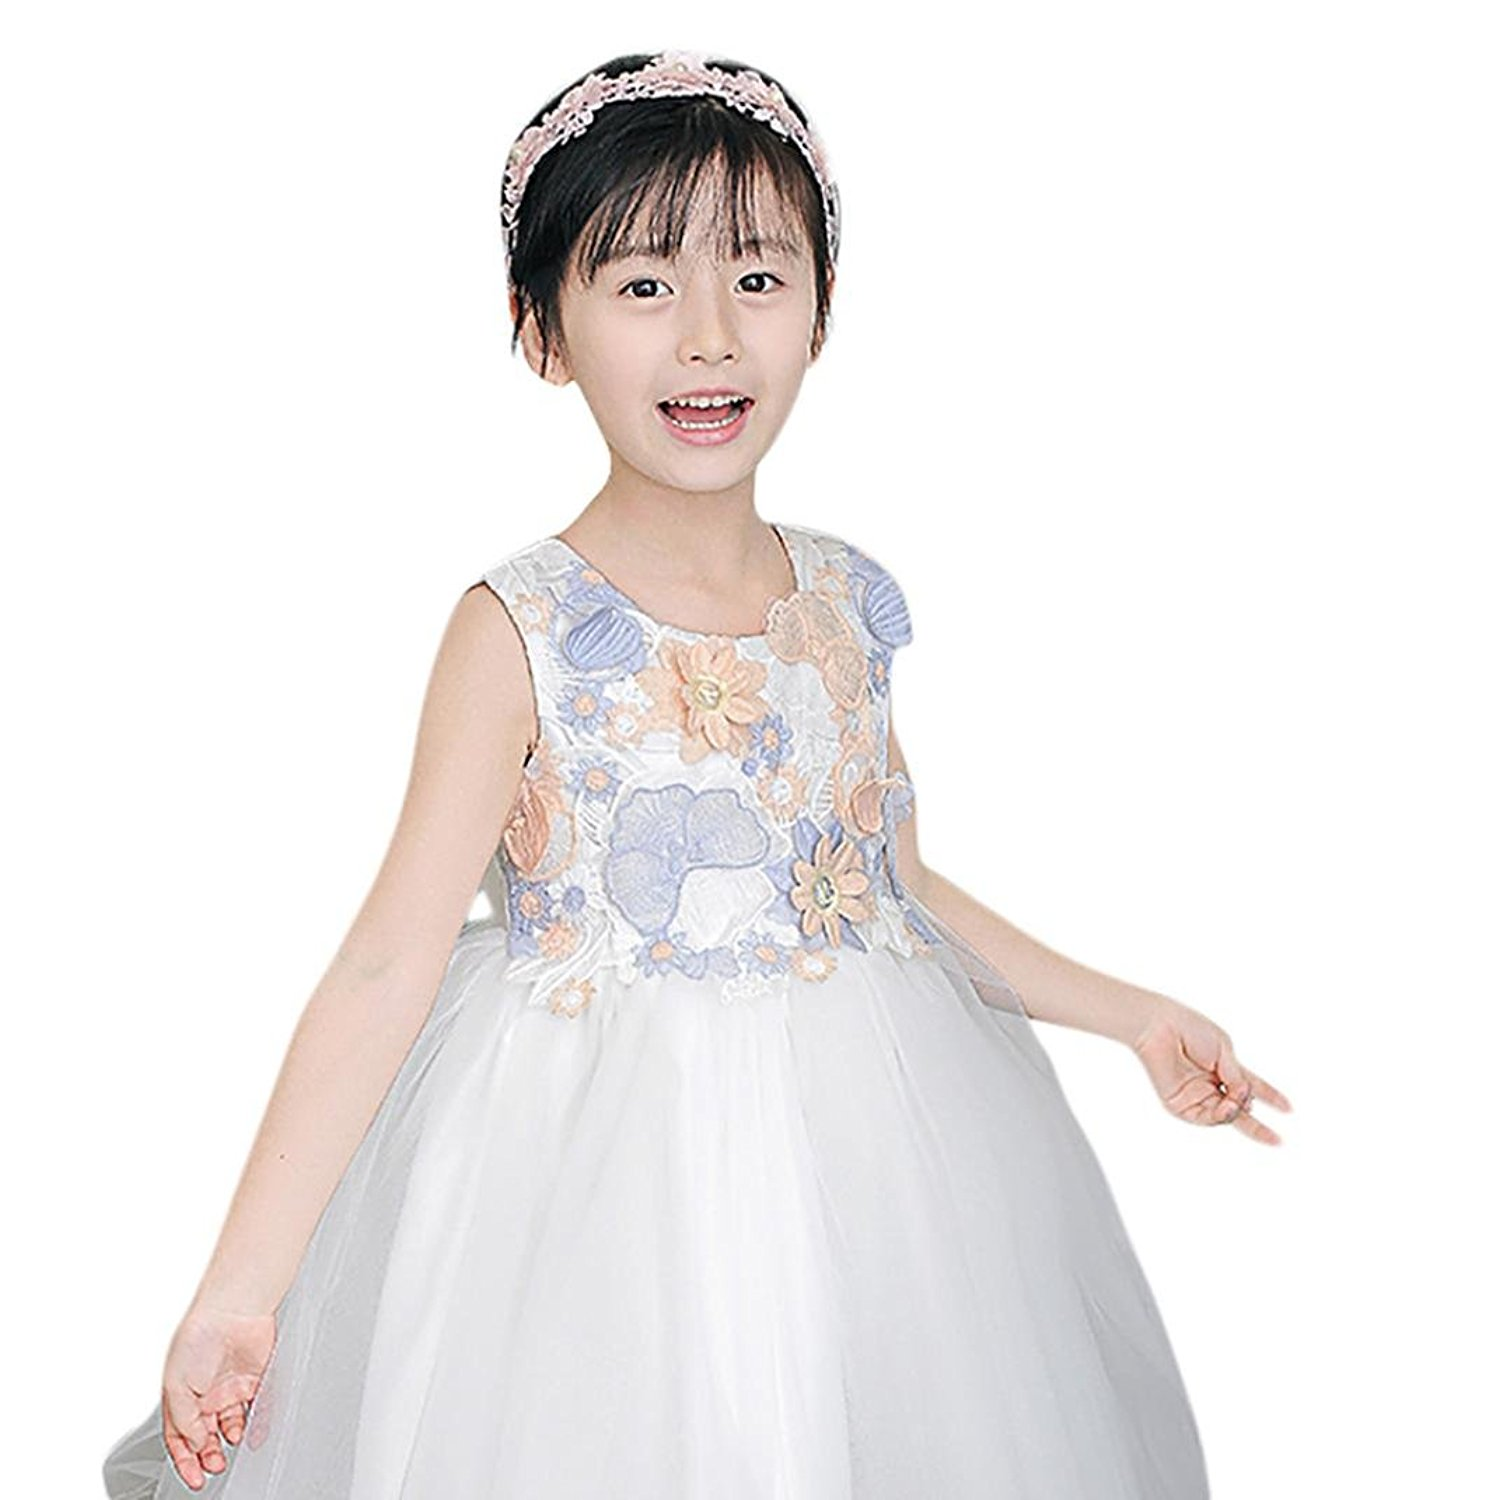 TiTCool Kids Girls Wedding Flower Dress Lace Sleeveless Princess Party Formal Play Show Dress